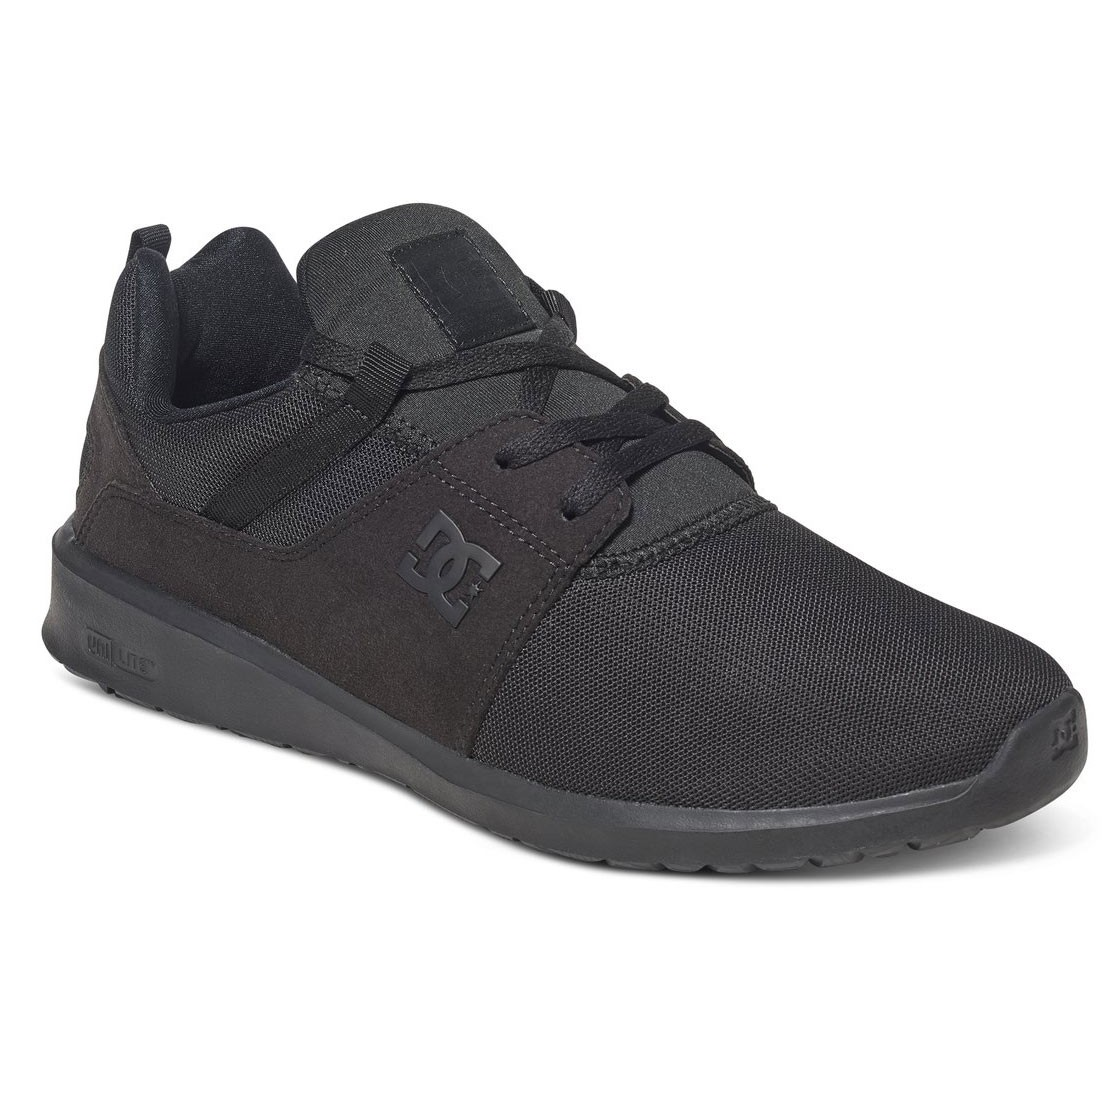 Tenisky DC Heathrow black/black/black